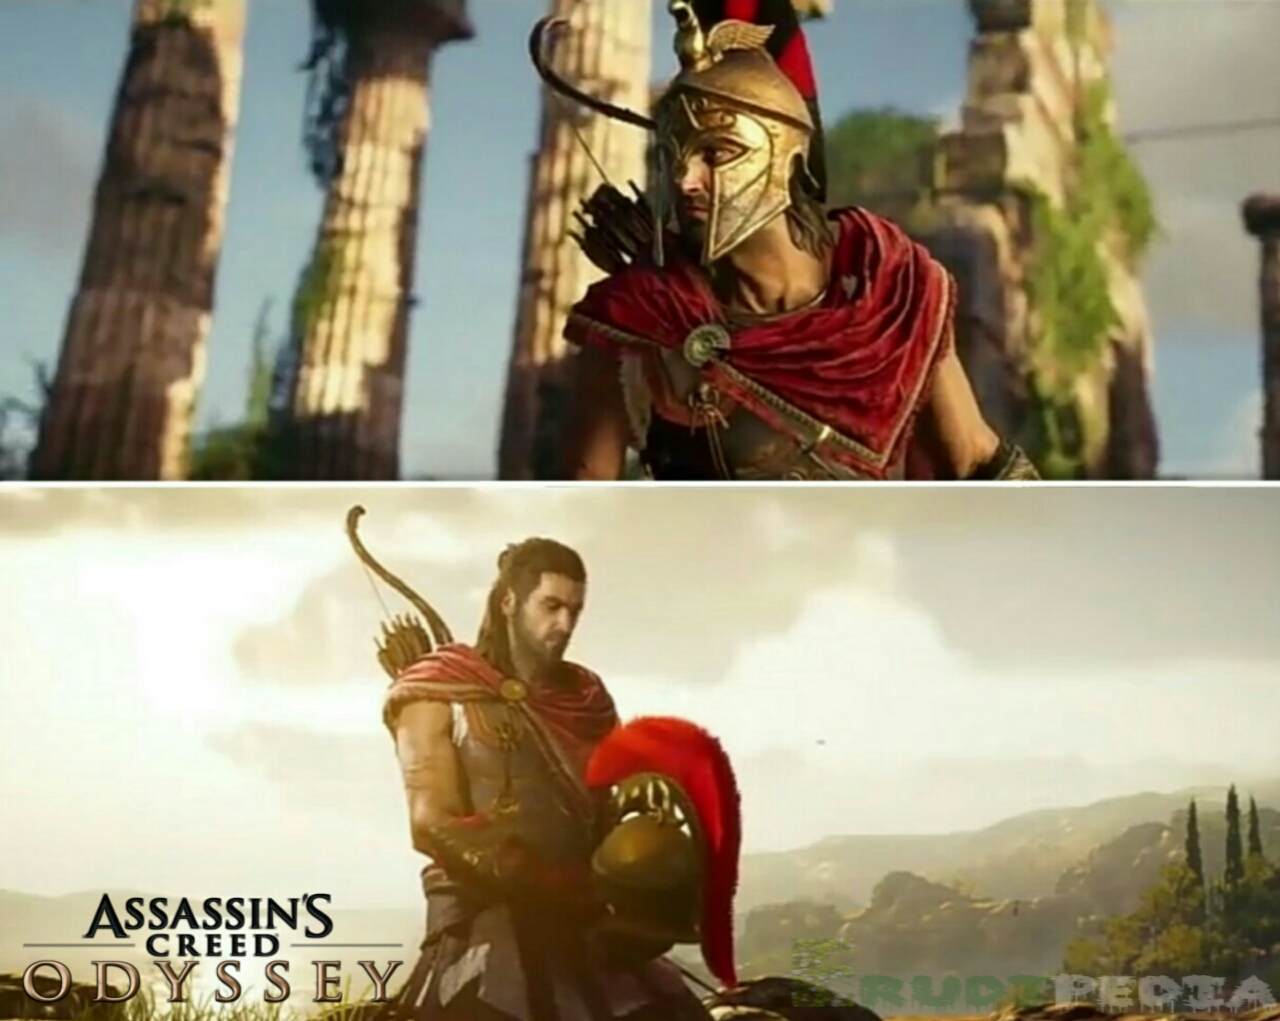 Assassins creed odyssey updated version for ps4, xbox One and pc